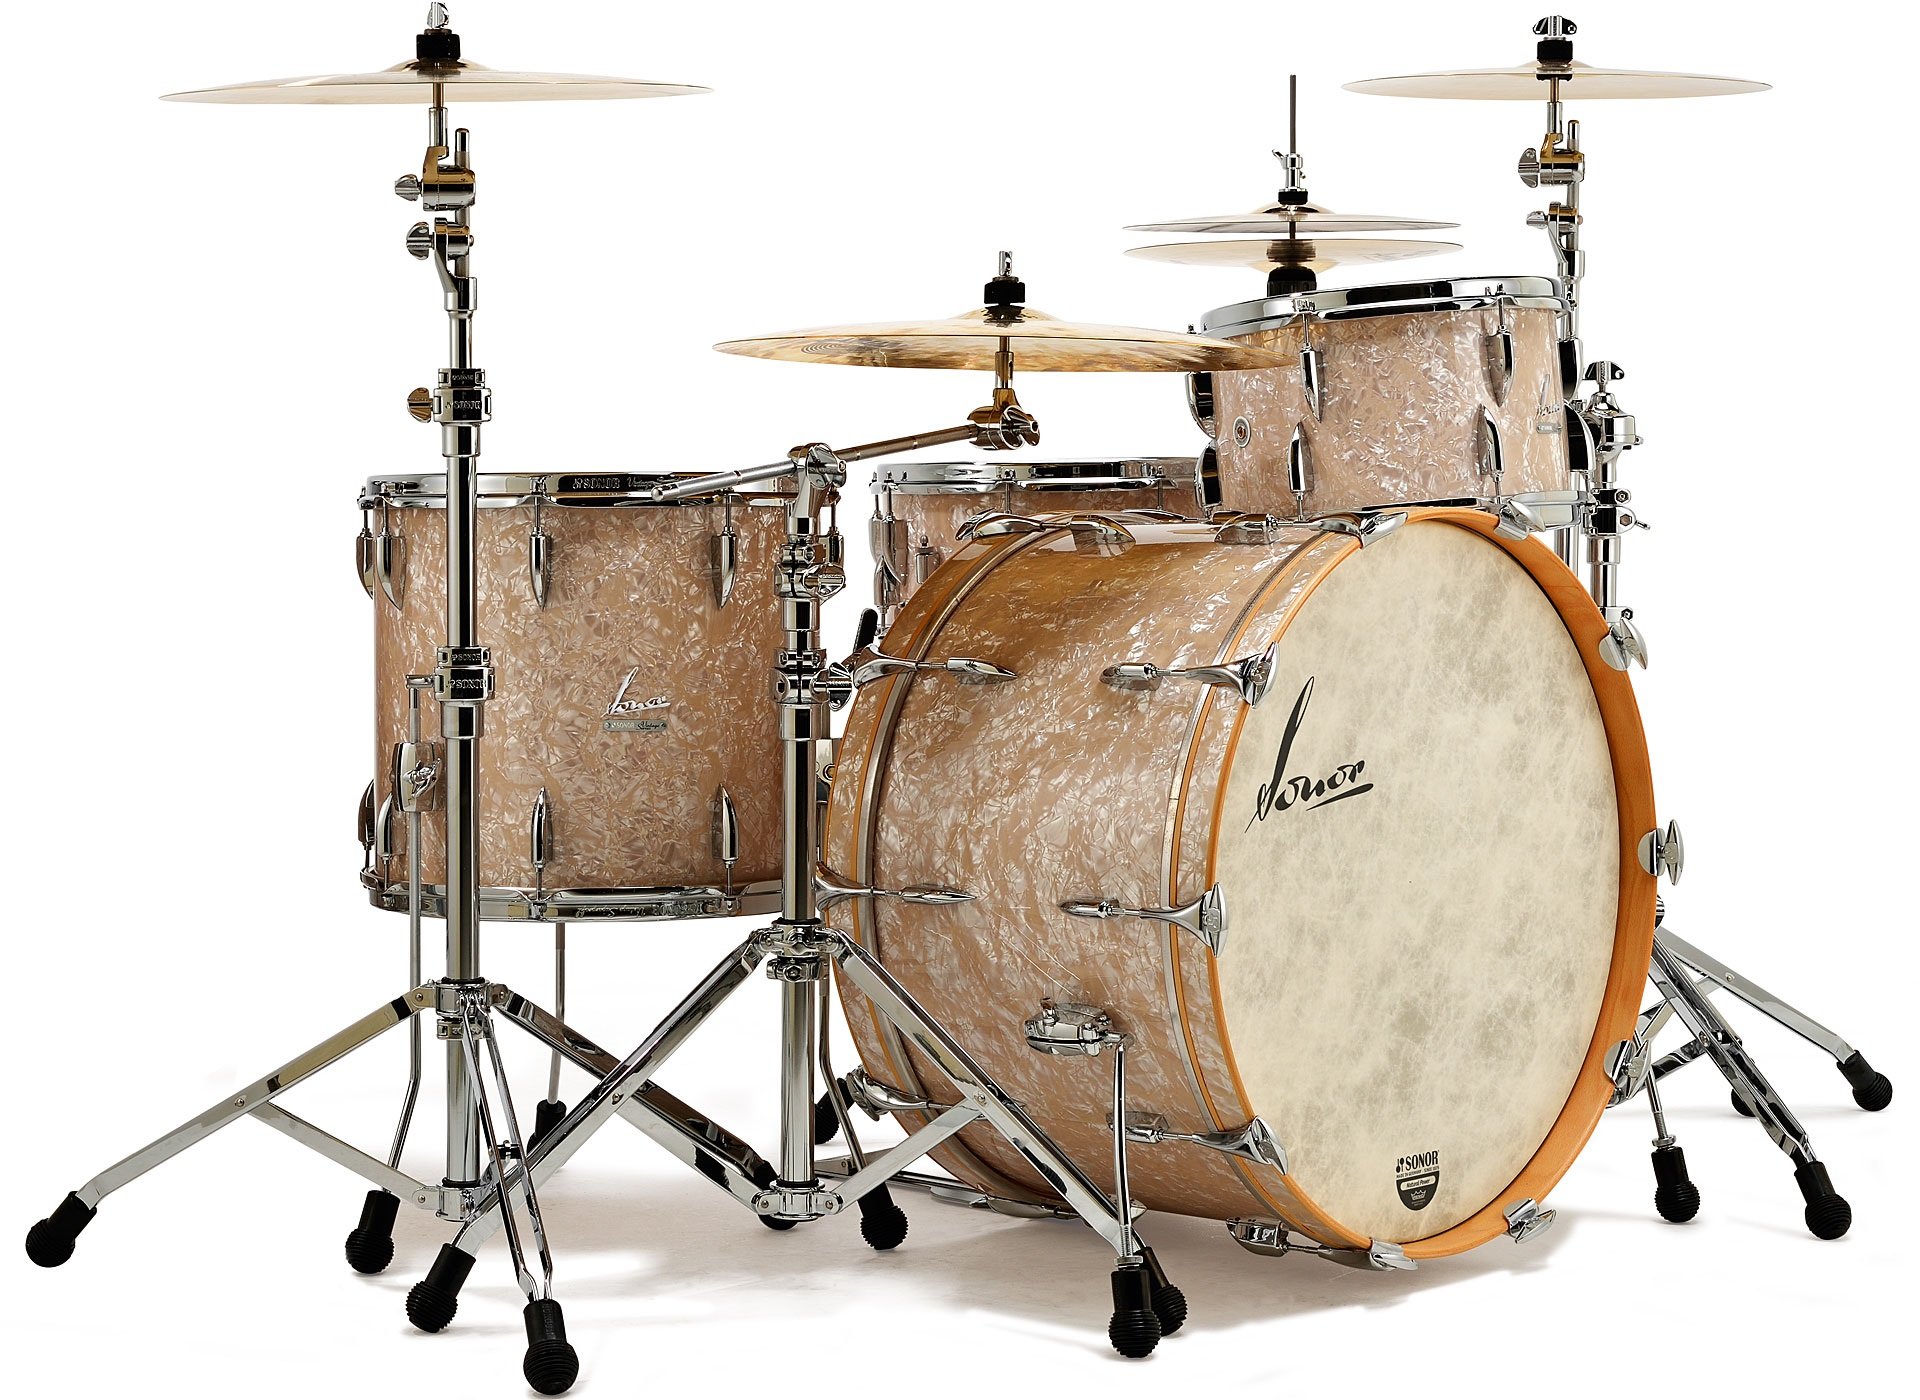 Sonor Vintage series set 2 Vintage pearl